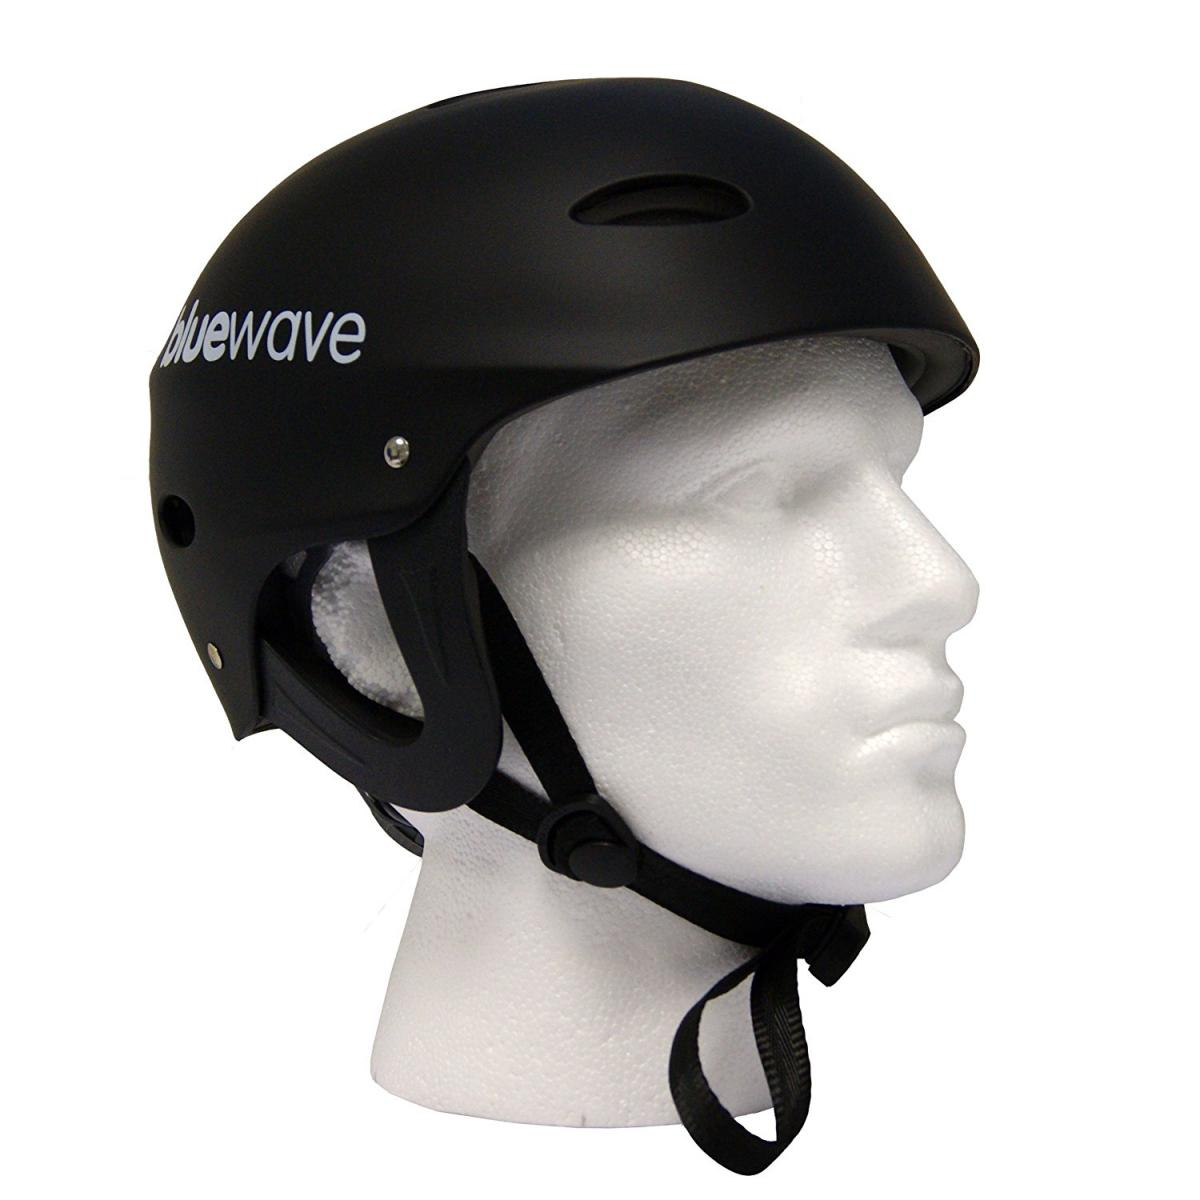 bluewave waterports helmet